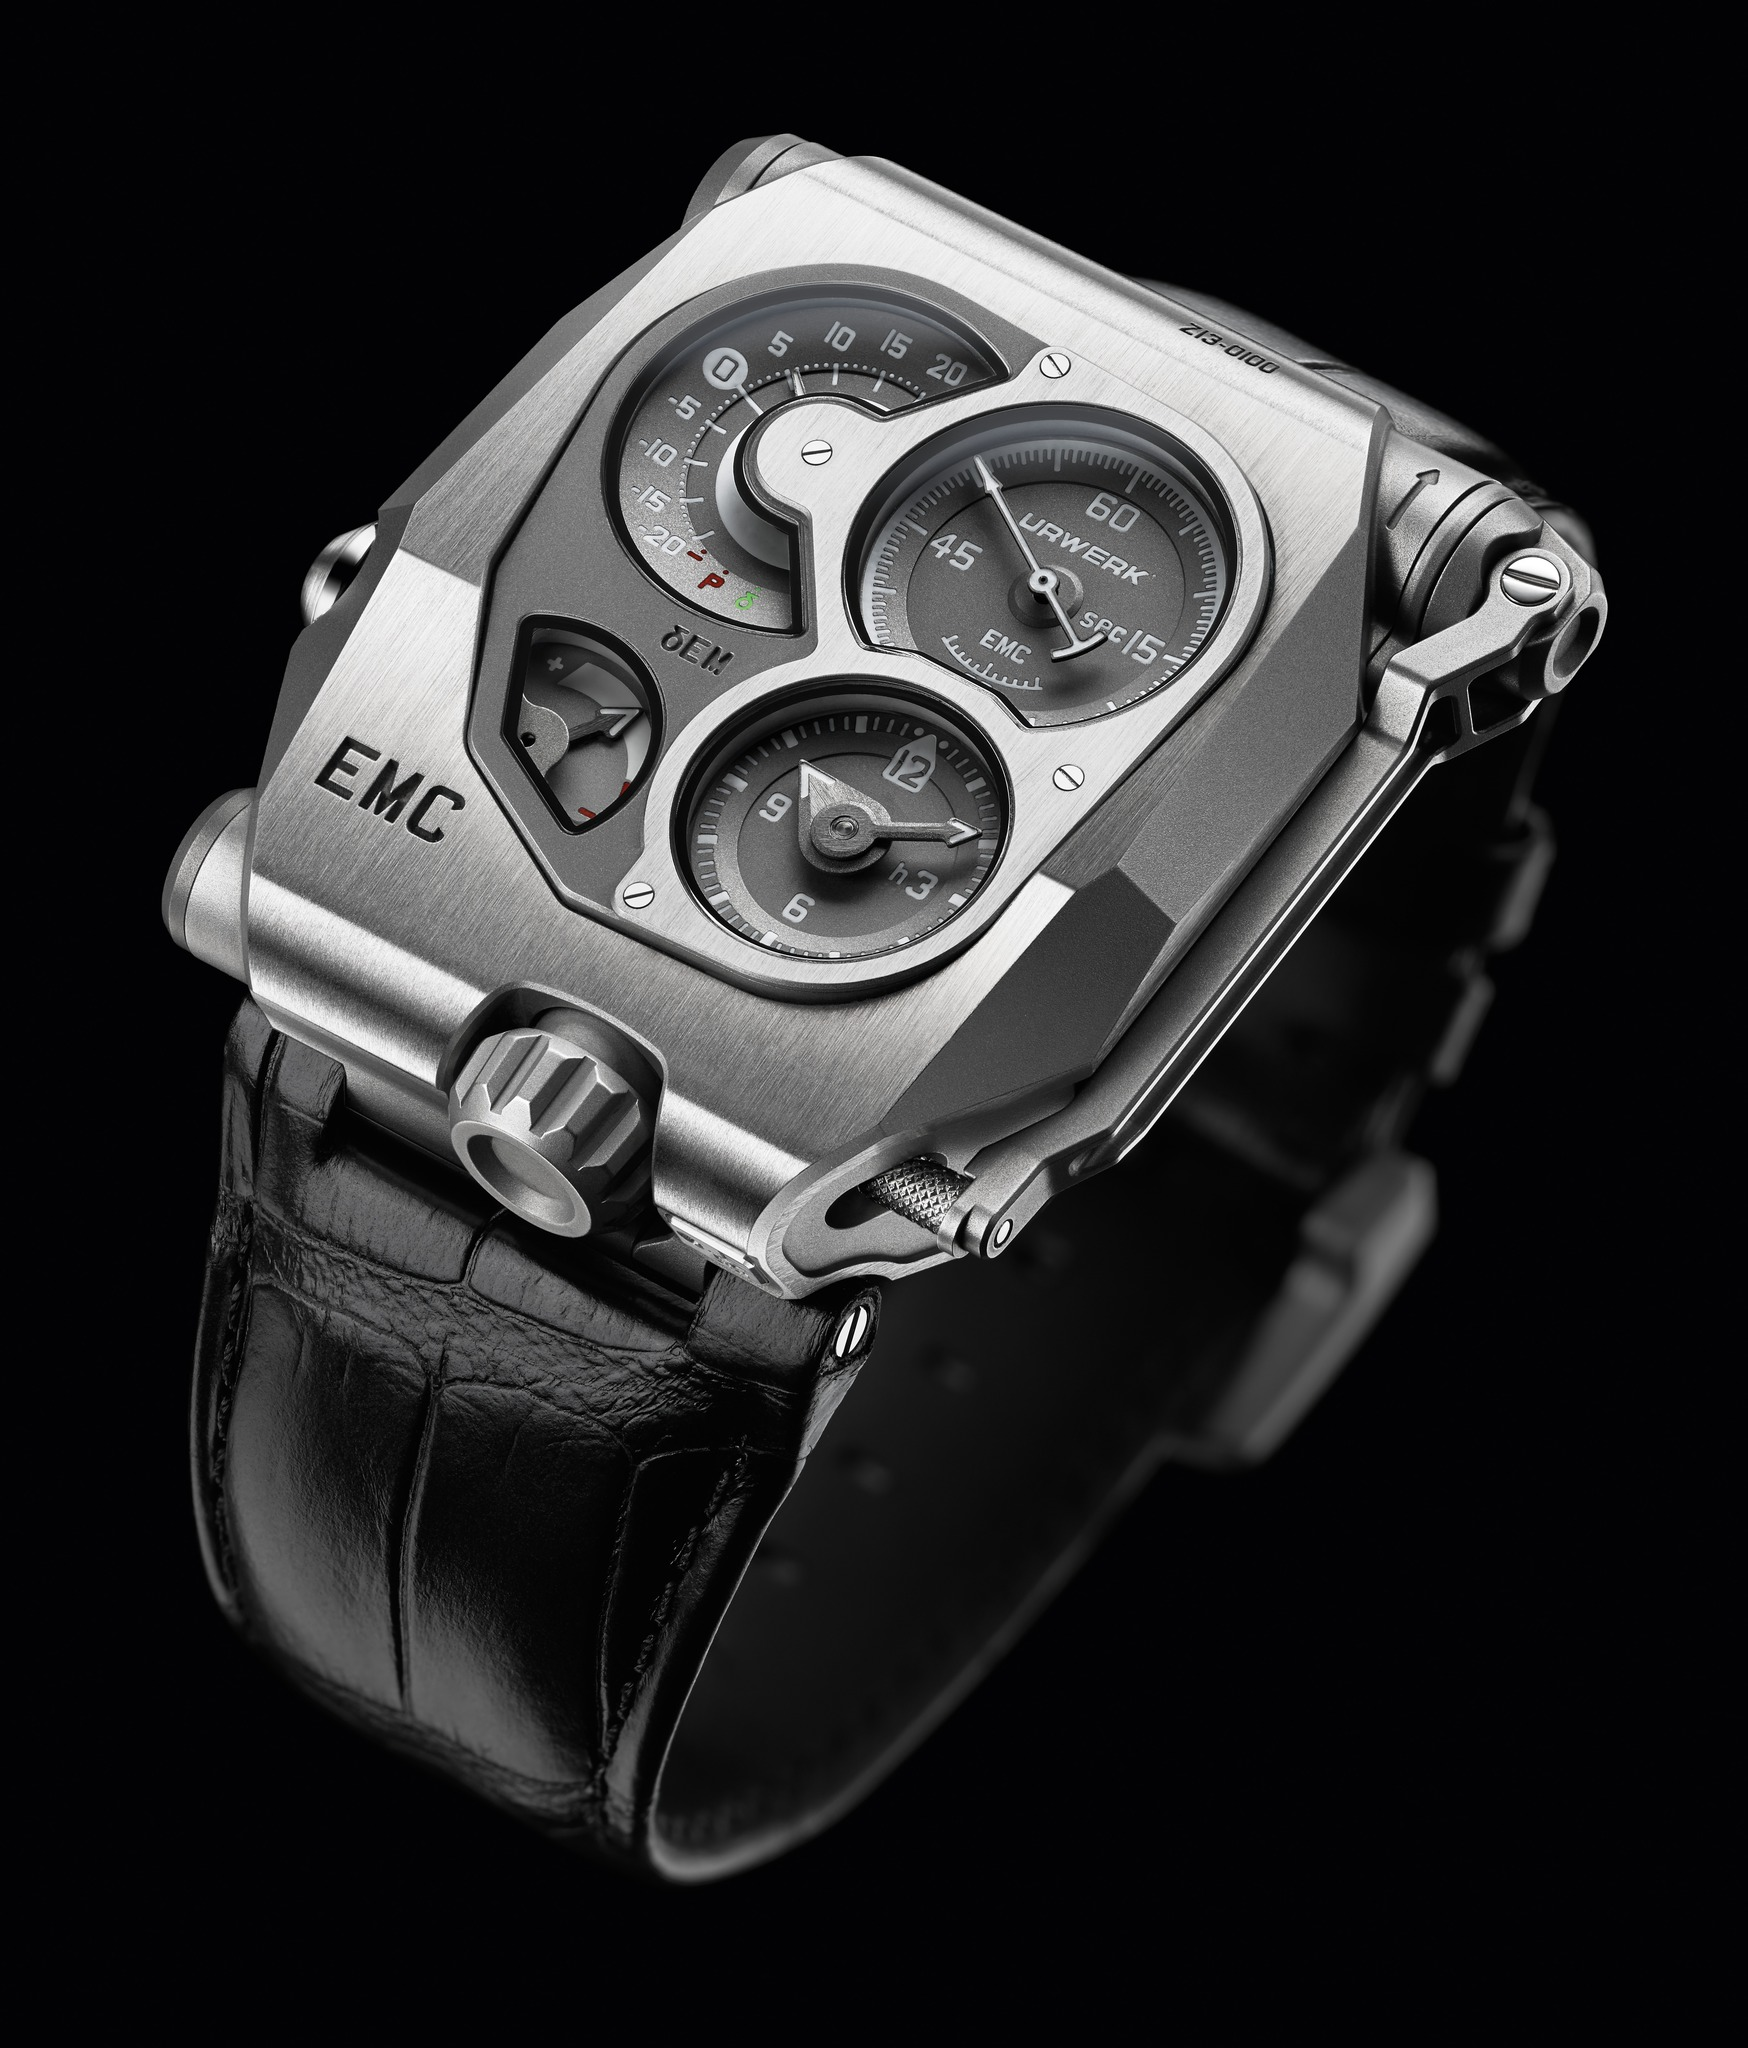 Replica Urwerk EMC Titanium and Steel Watch